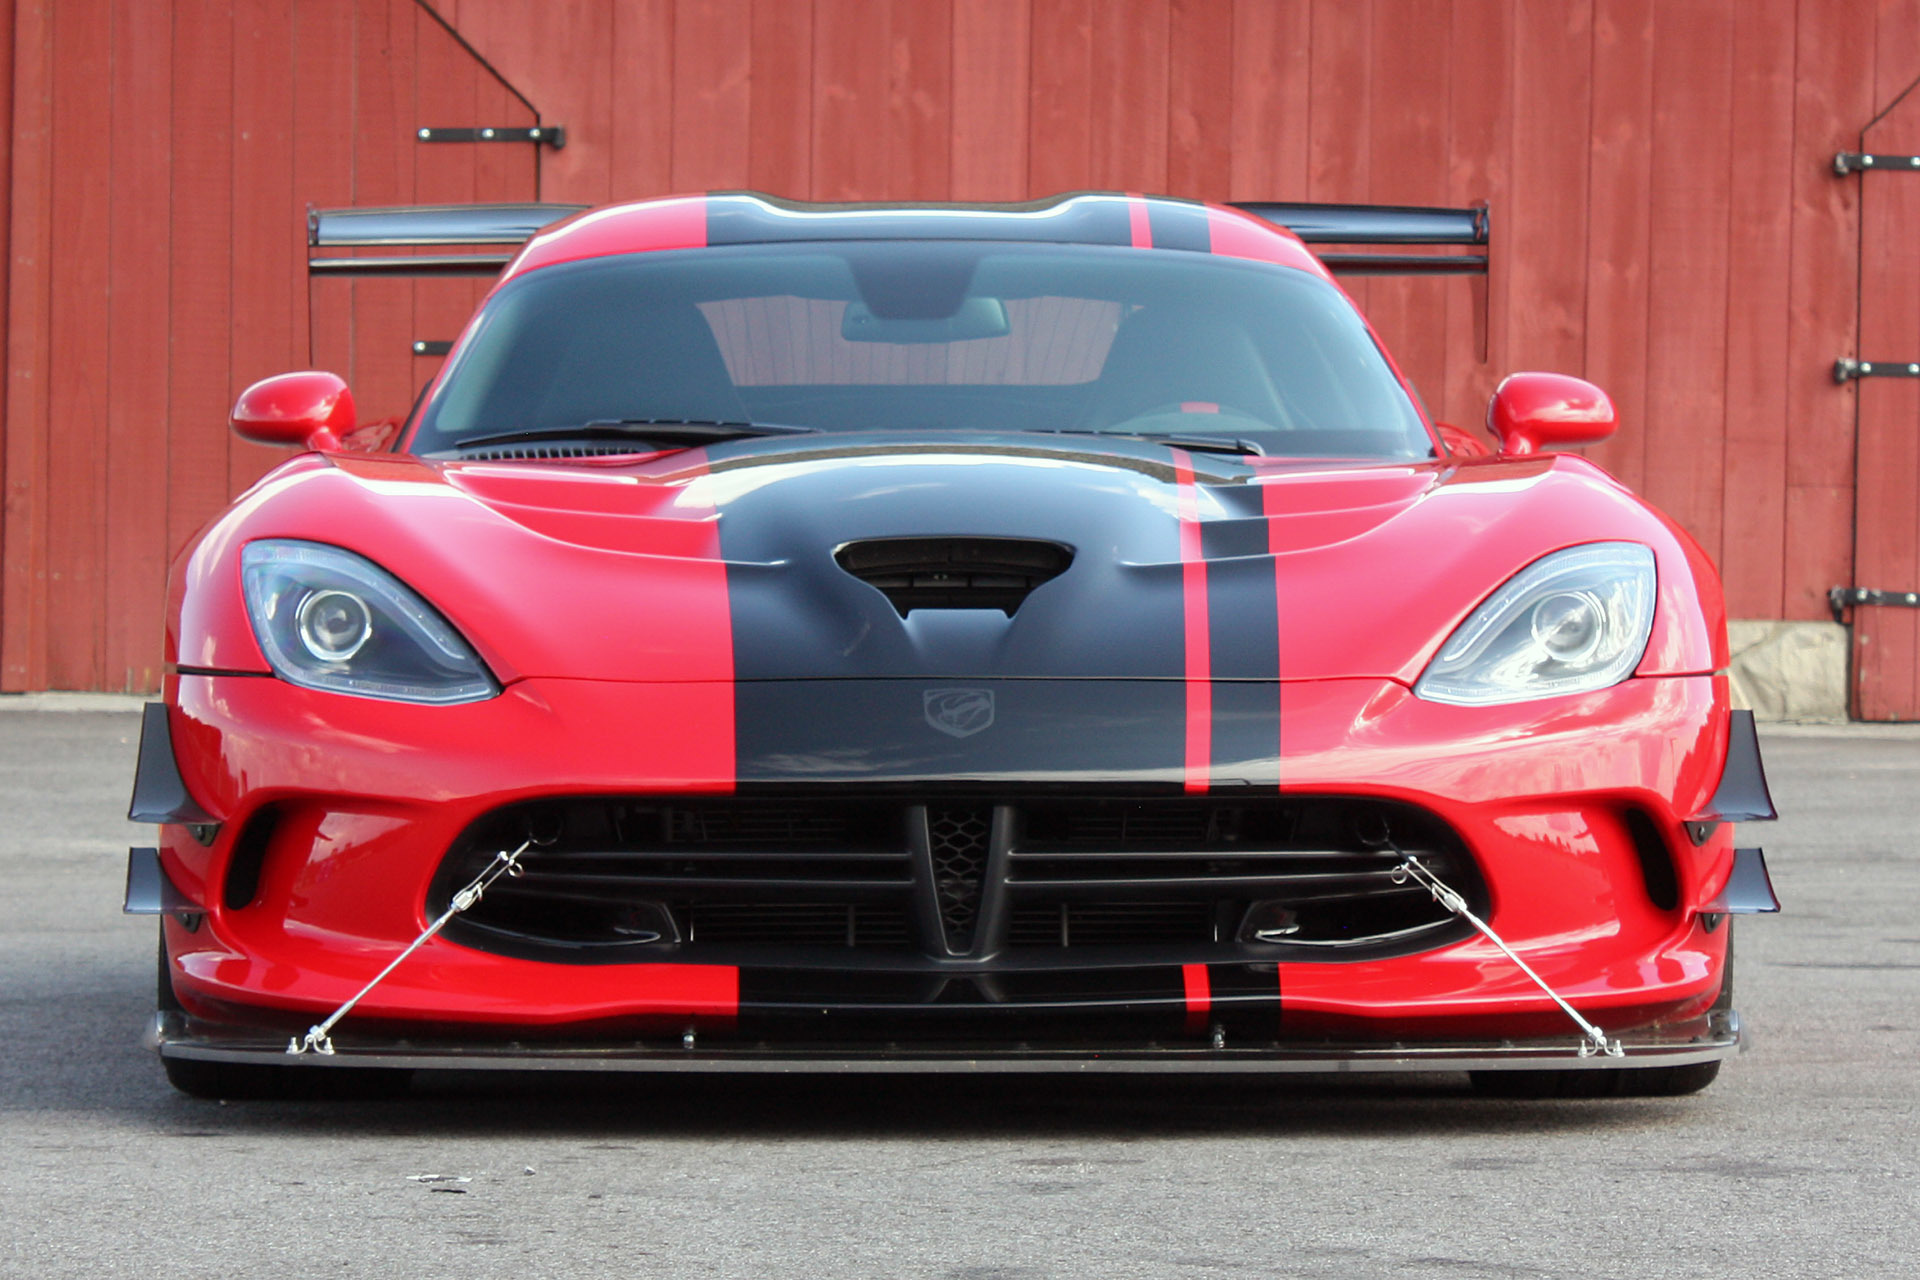 Cool 2016 Dodge Viper ACR Smashing Lap Records Everywhere